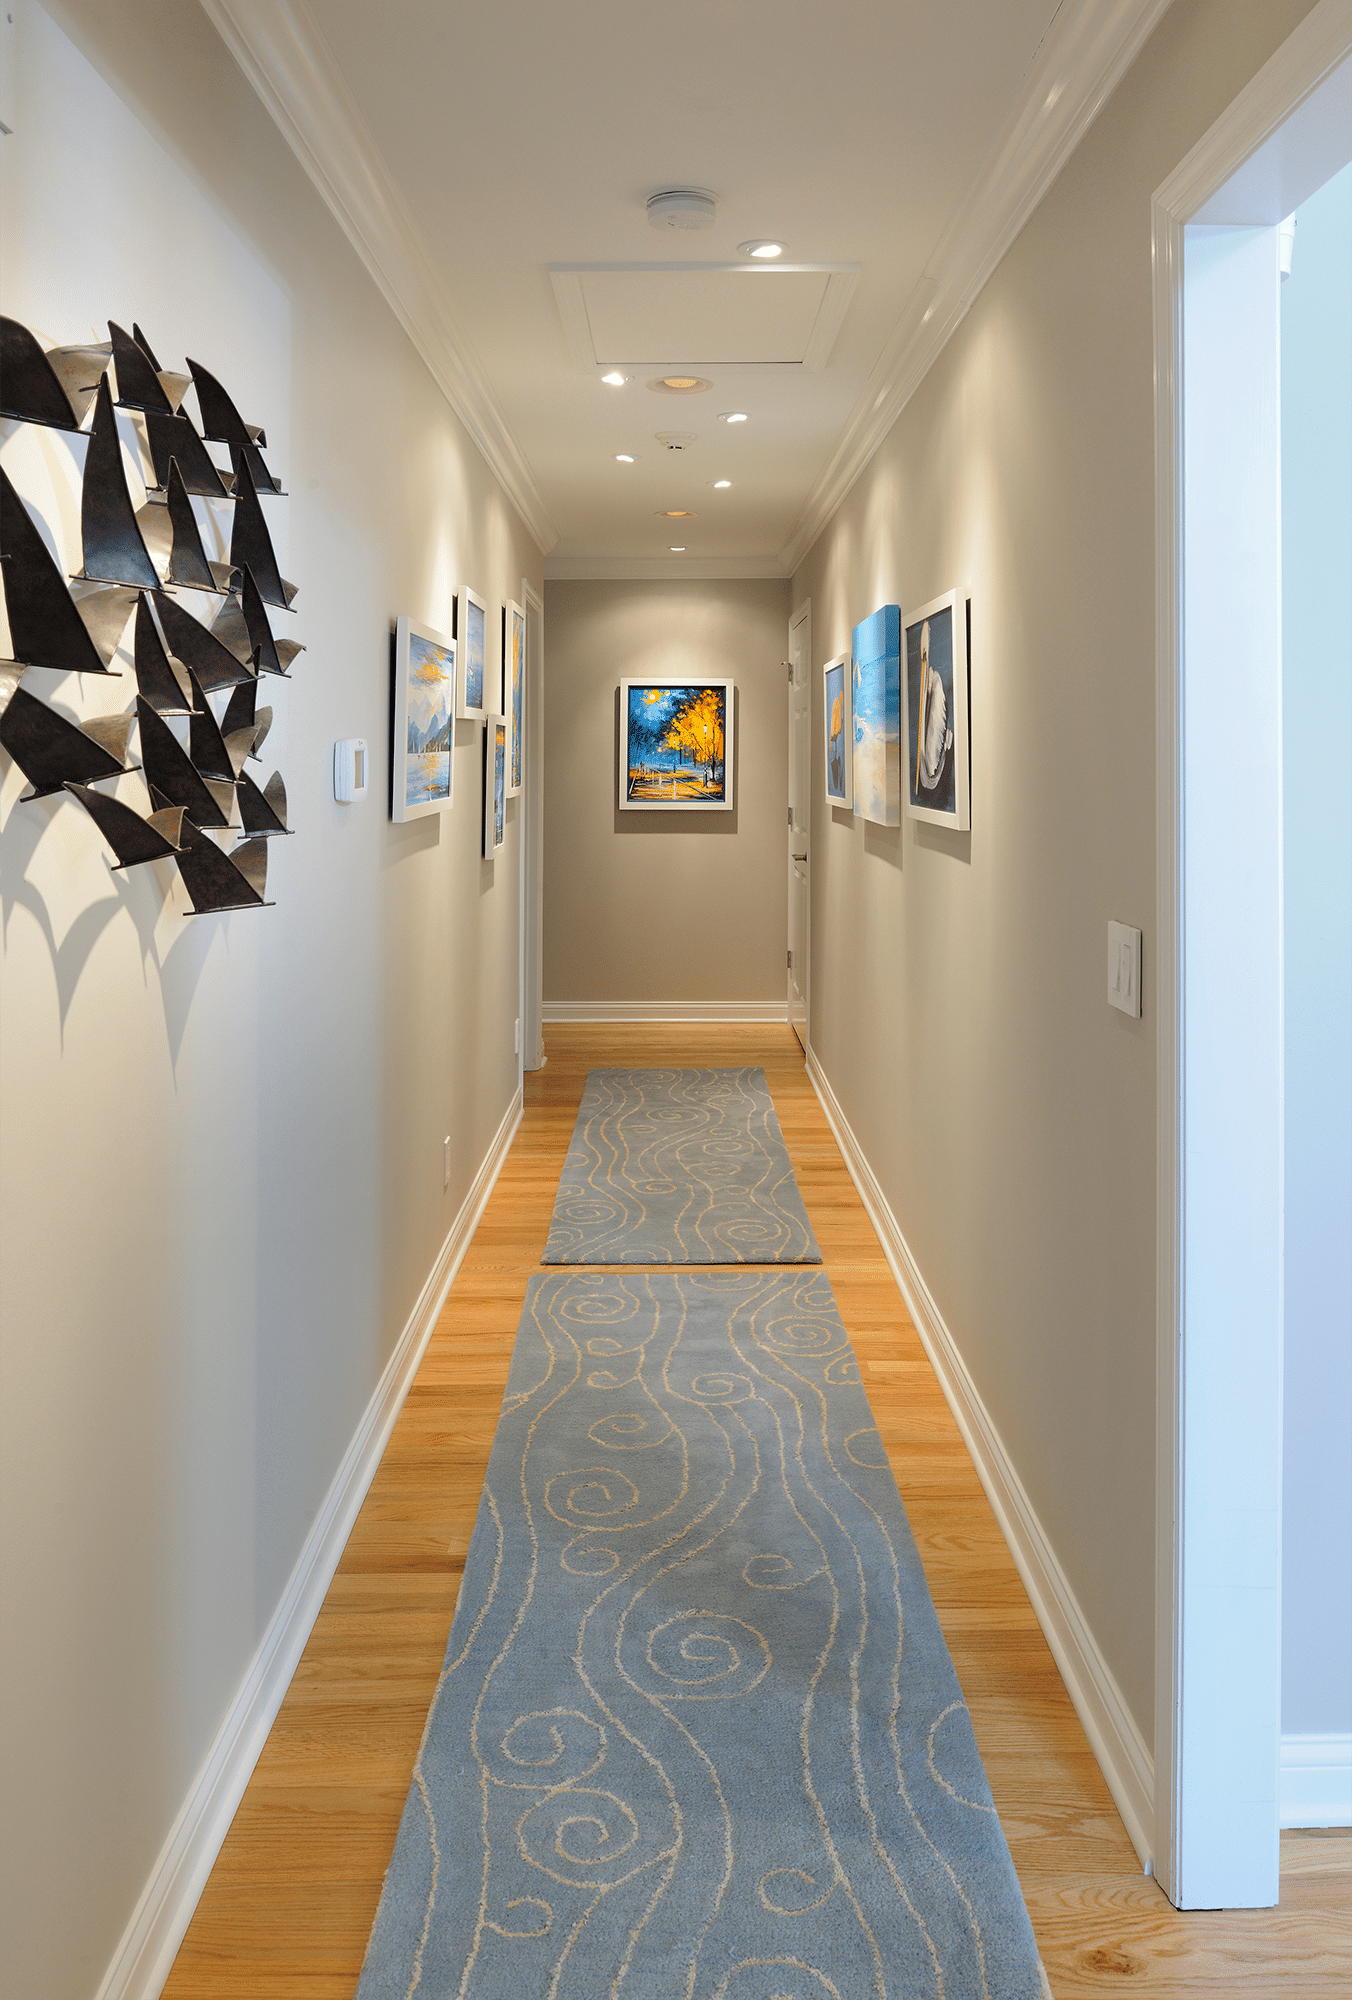 Gray hallway with paintings on walls